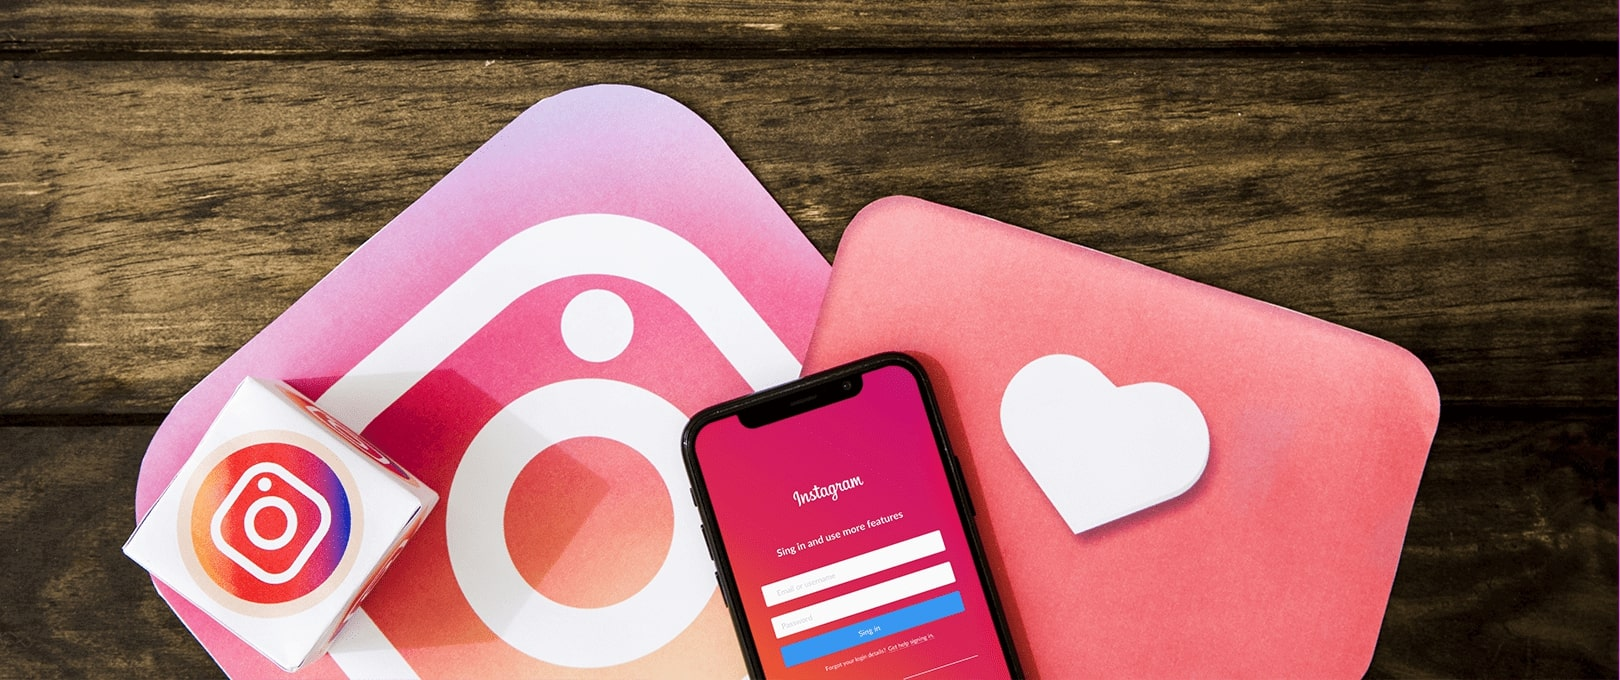 How To Get Most Instagram Followers